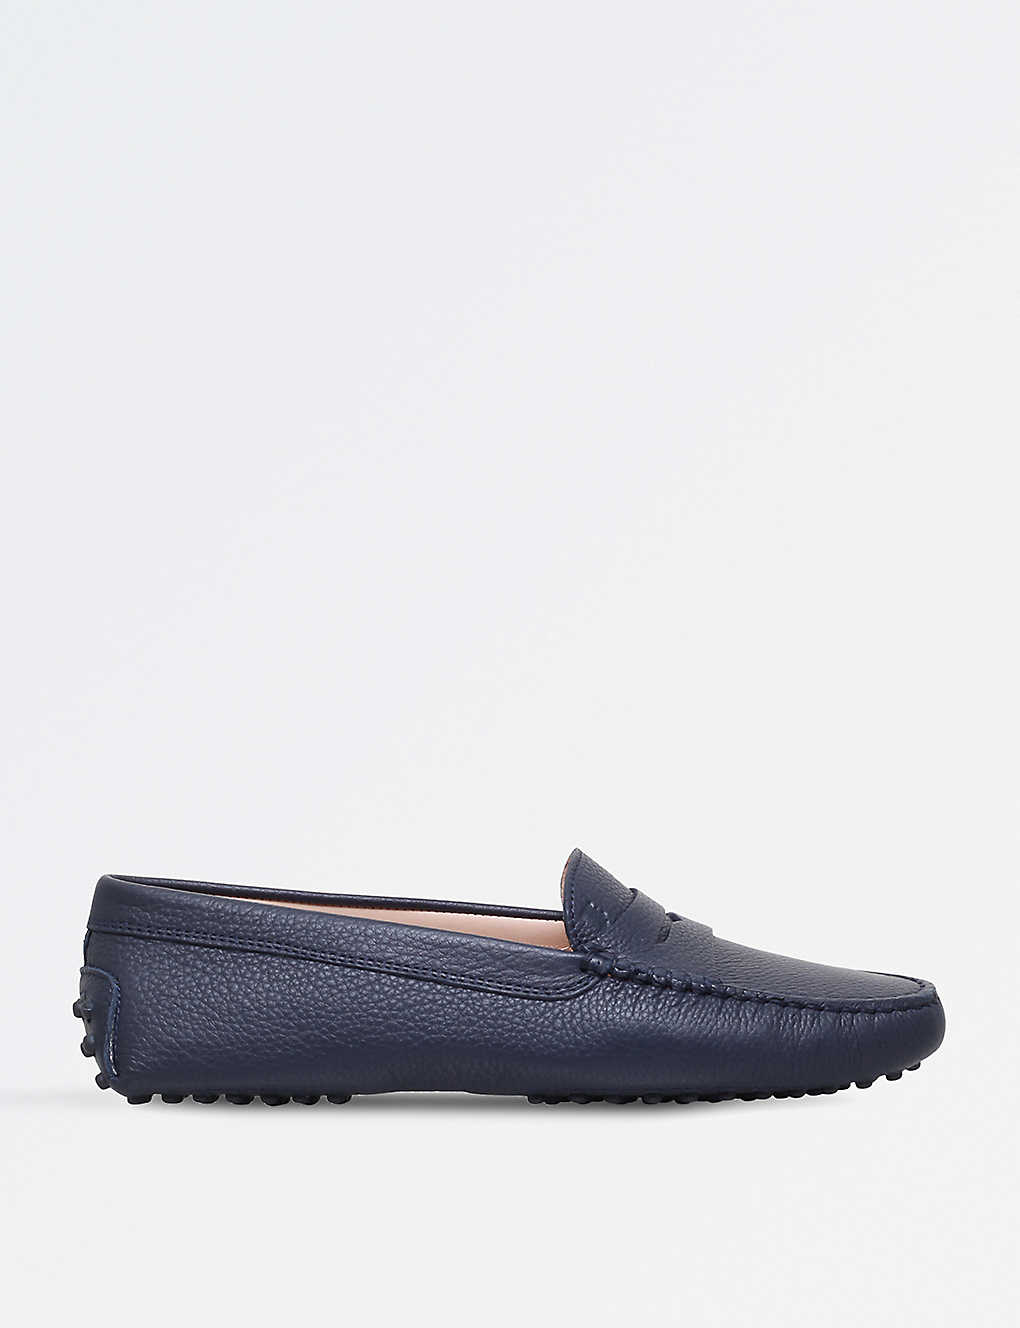 c75820e9b TODS - City Gommino leather loafers | Selfridges.com